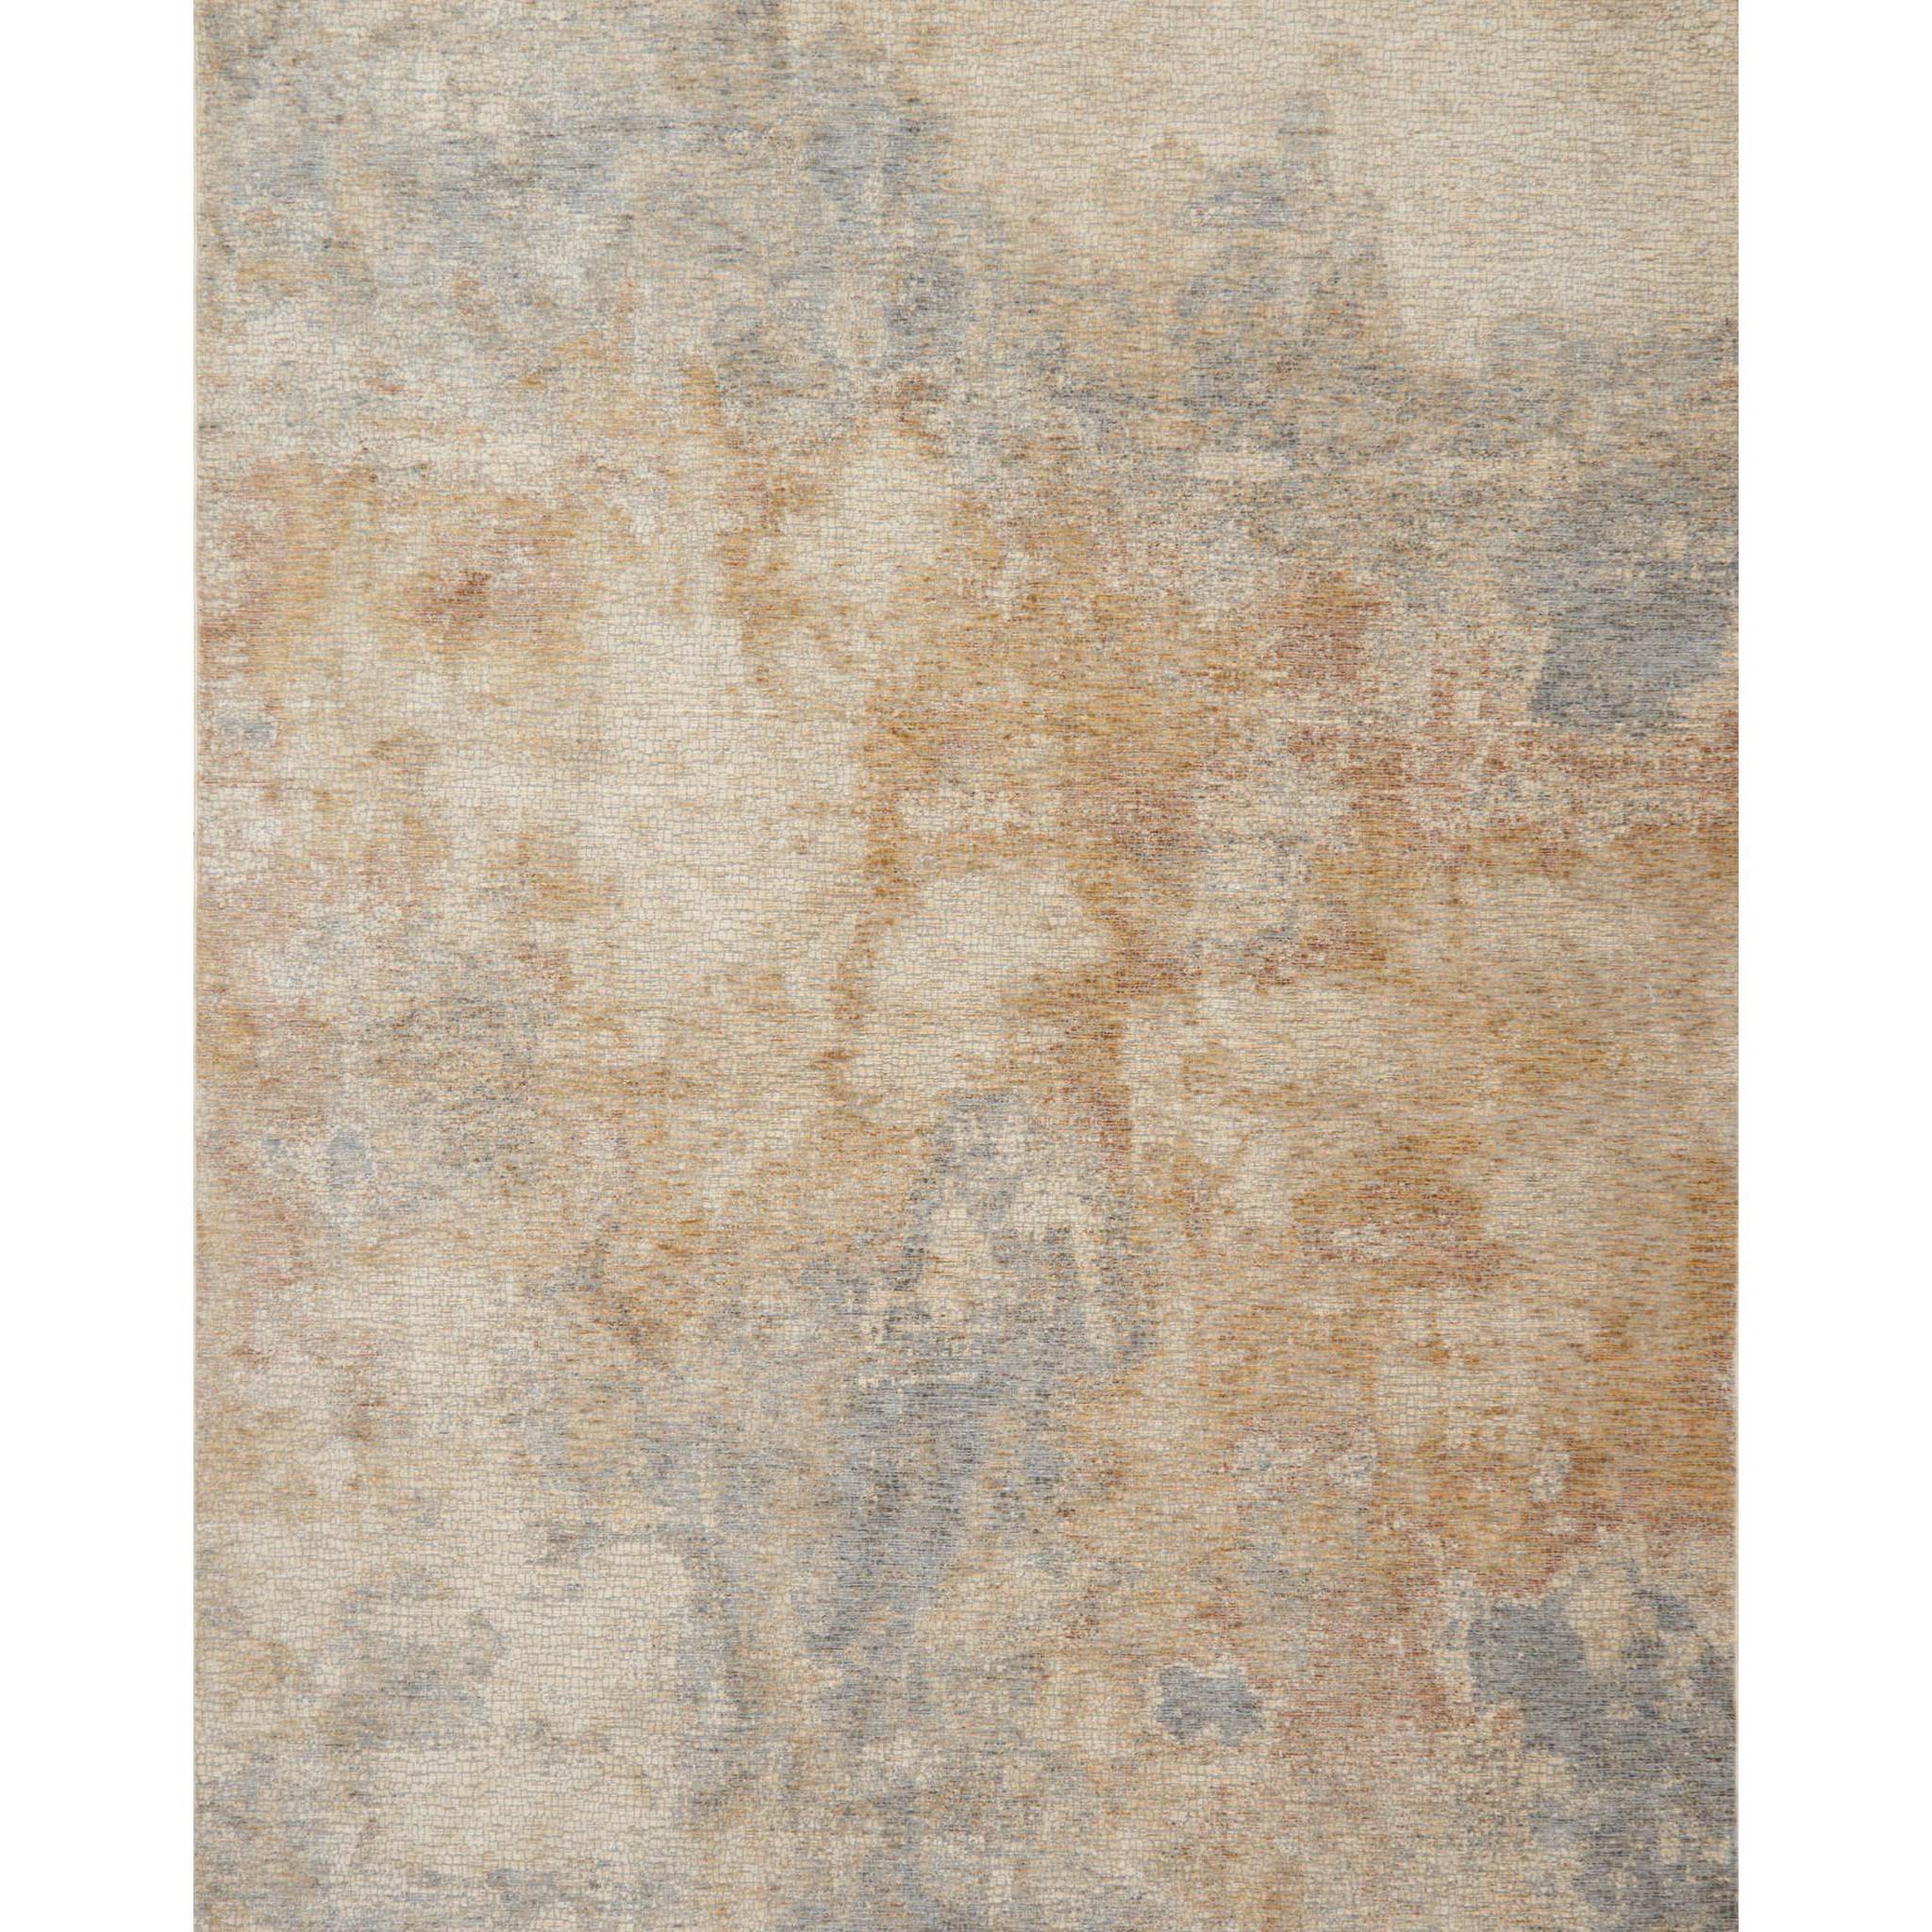 "Porcia 2'-0"" x 3'-4"" Area Rug by Loloi Rugs at Sprintz Furniture"